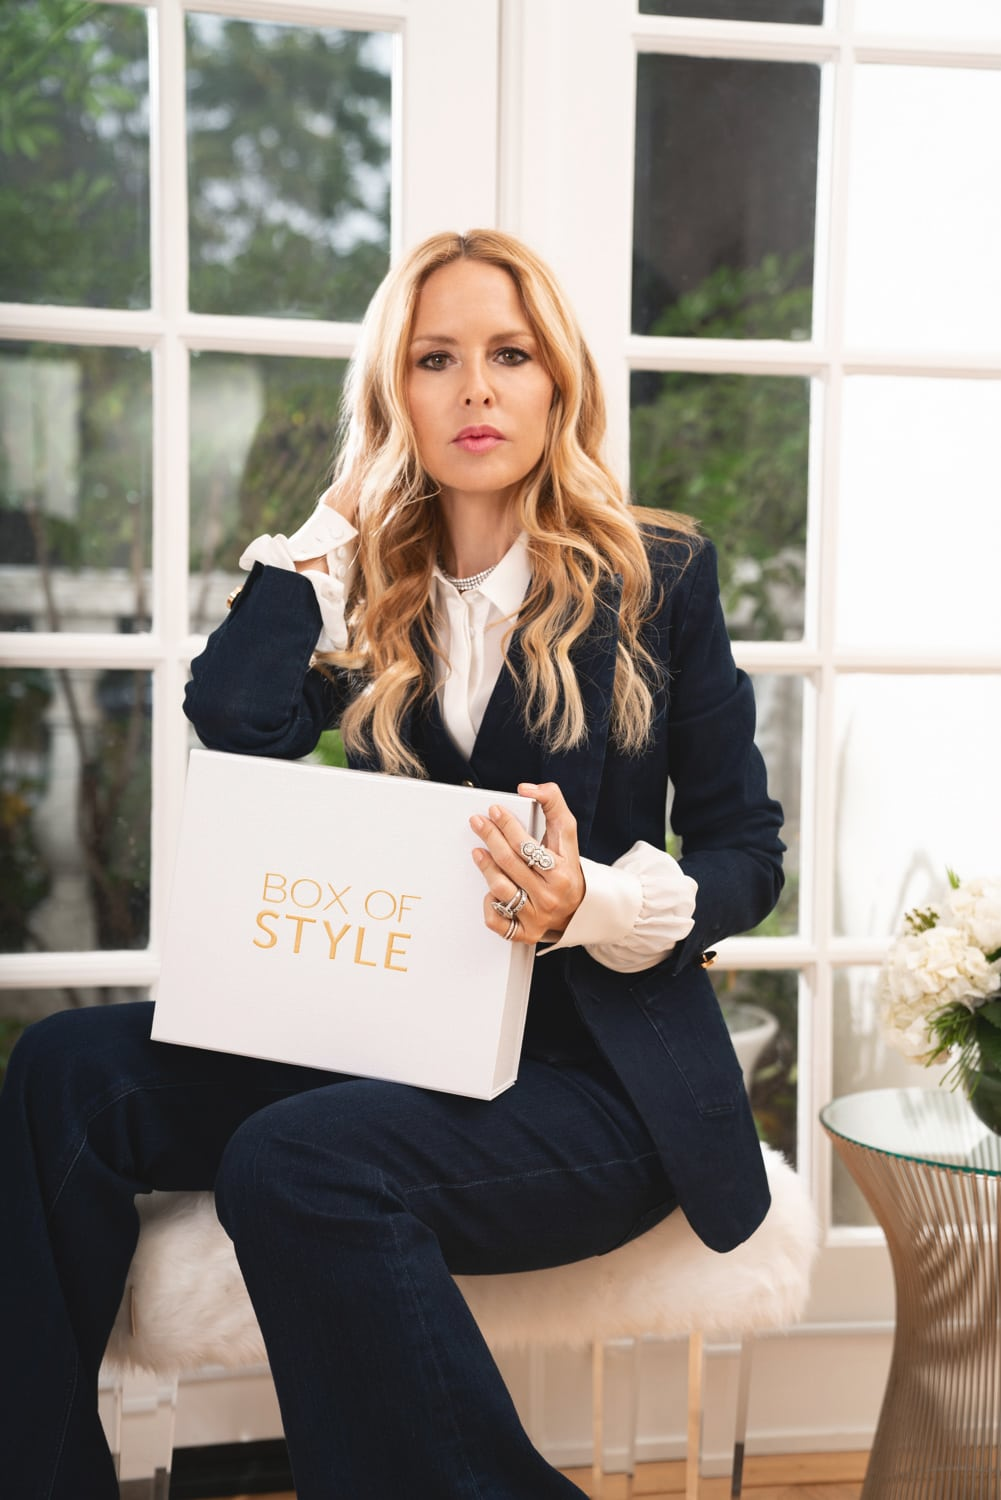 Box of Style by Rachel Zoe Spring 2019 Full Spoilers + Coupon!